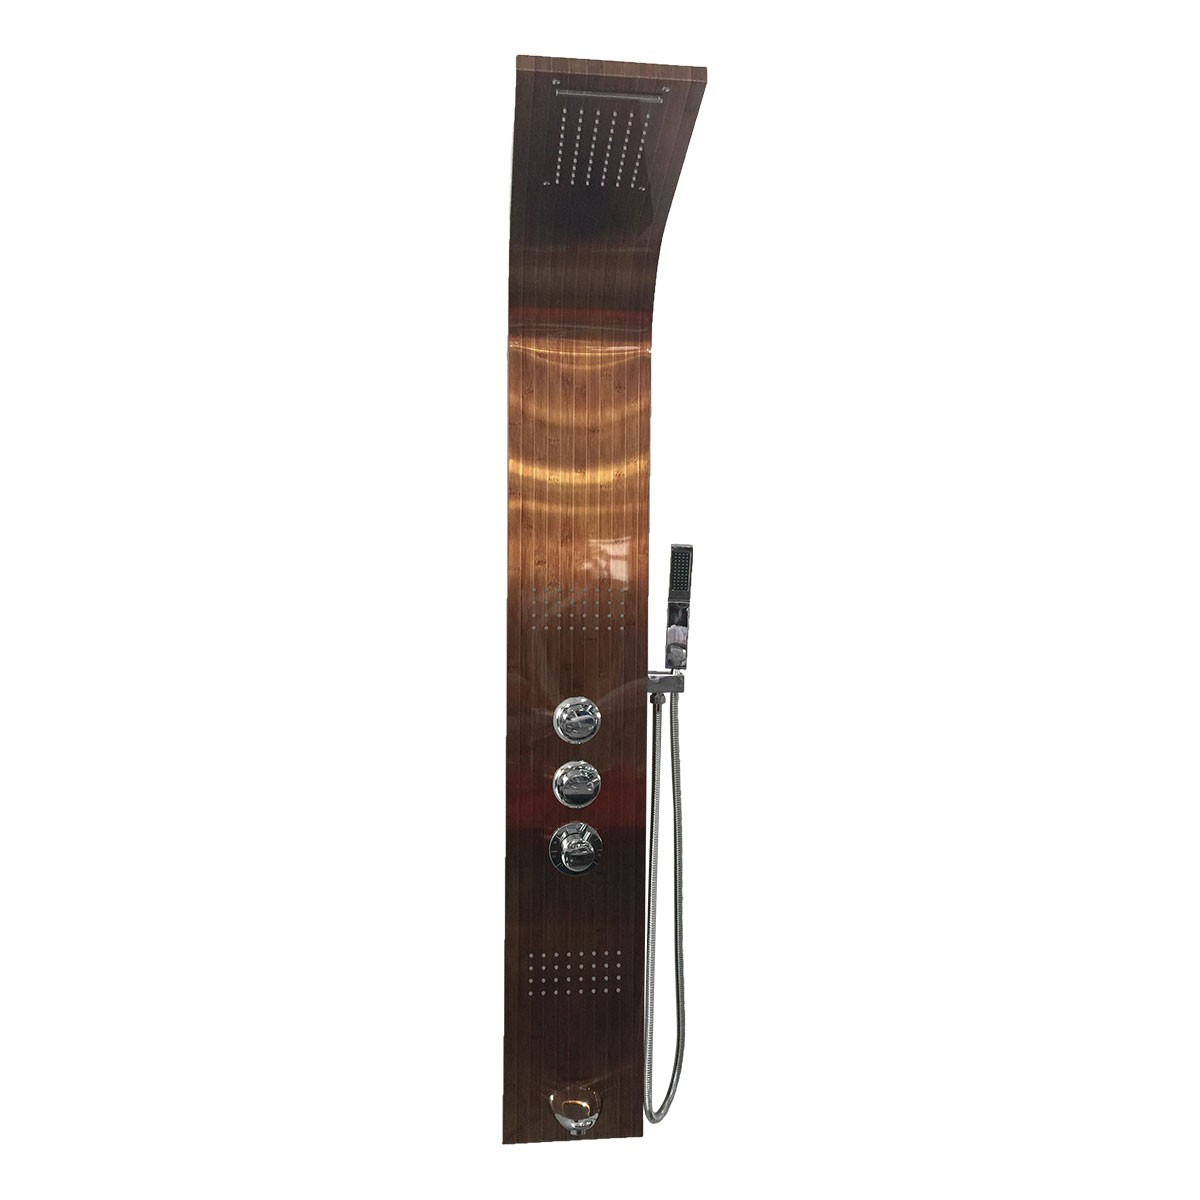 Bamboo Copper Color Stainless Steel Thermostatic Shower Panel System (LYB-5533-ZM)